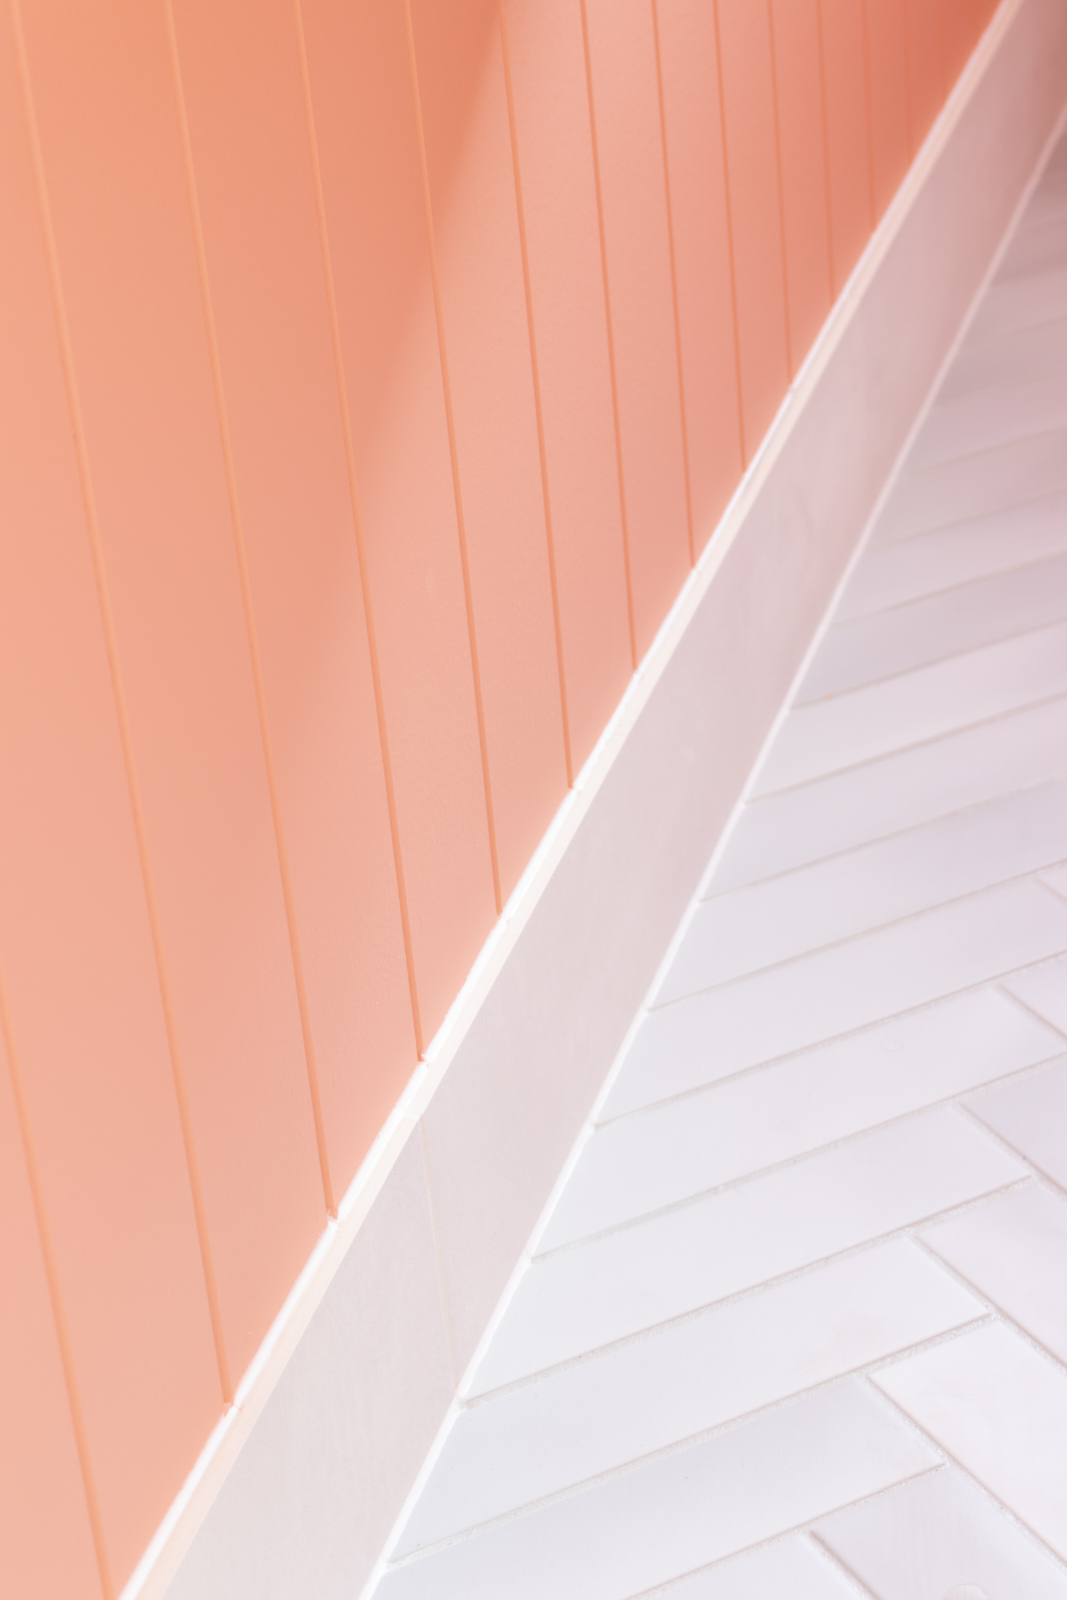 Pink walls and white floor tiles in bathroom